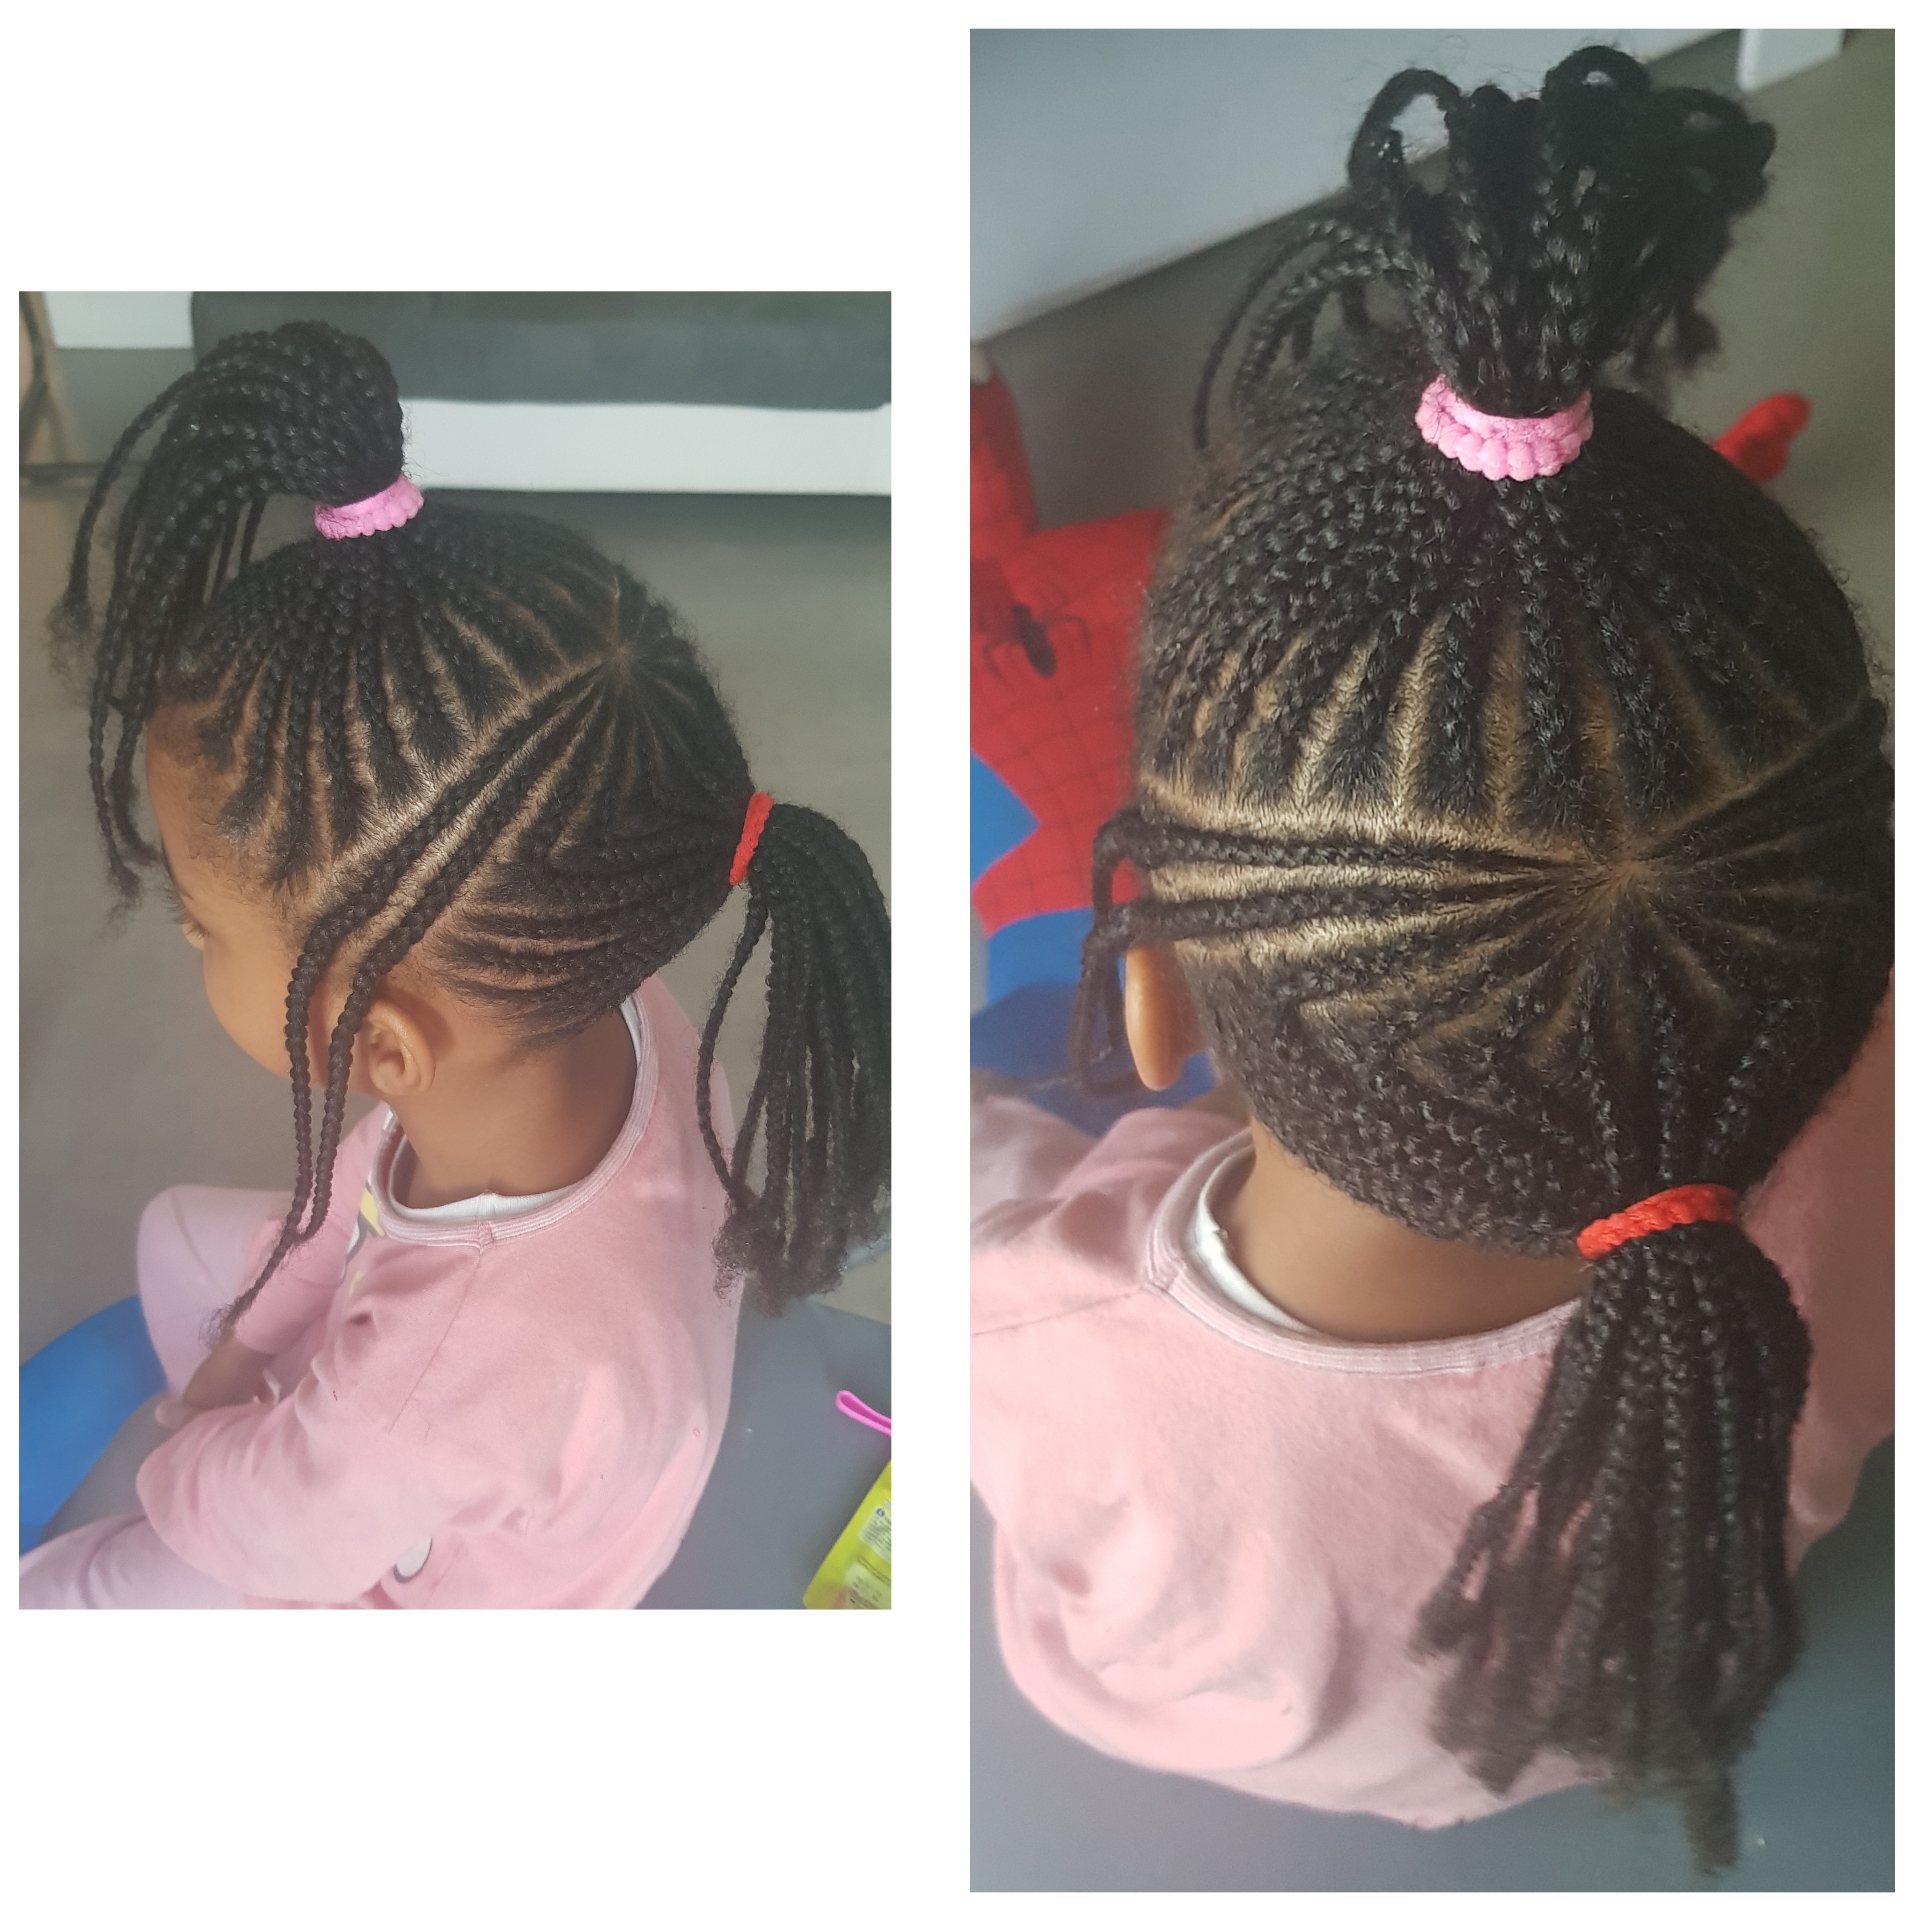 salon de coiffure afro tresse tresses box braids crochet braids vanilles tissages paris 75 77 78 91 92 93 94 95 GQGMPCGQ